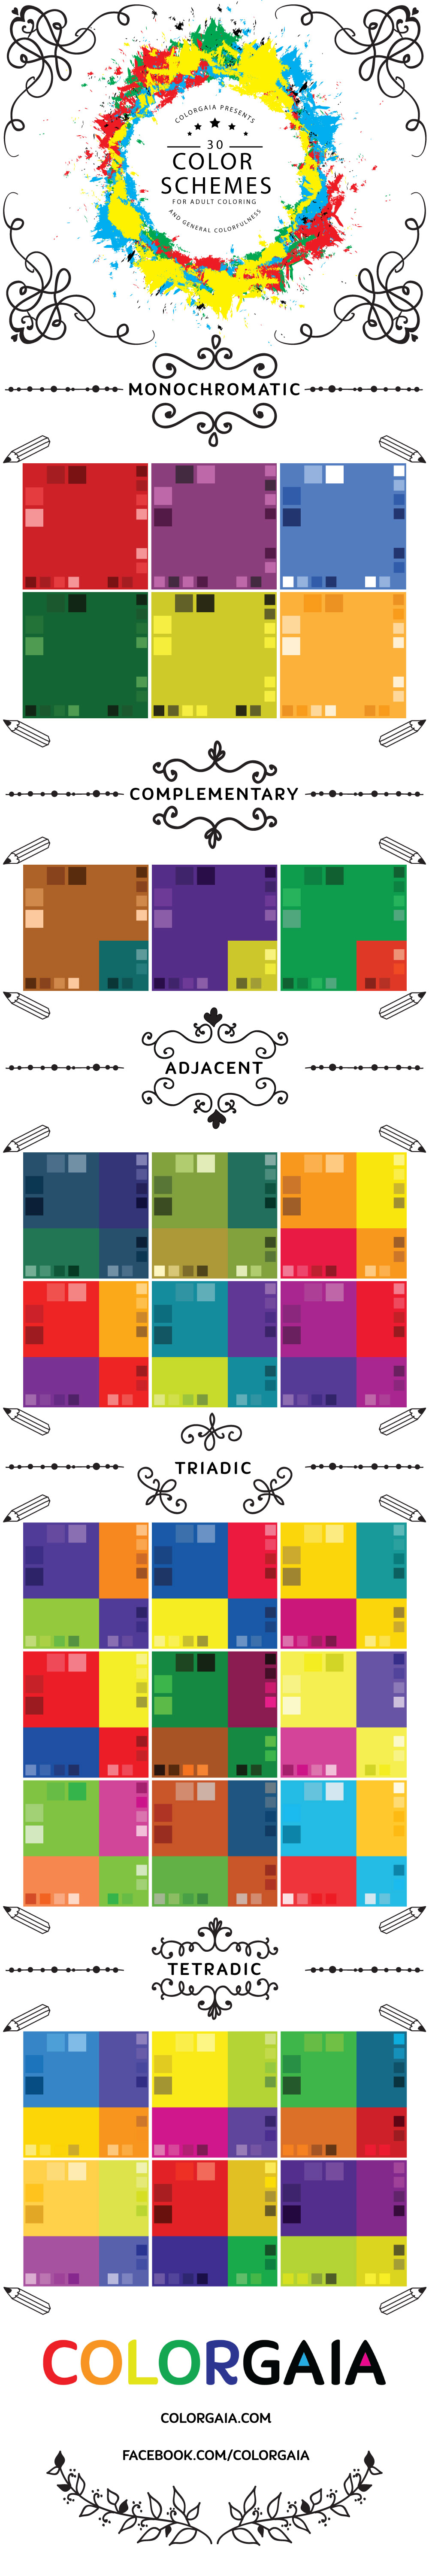 A List Of Thirty Different Color Schemes To Try Out For Your Next Coloring Project